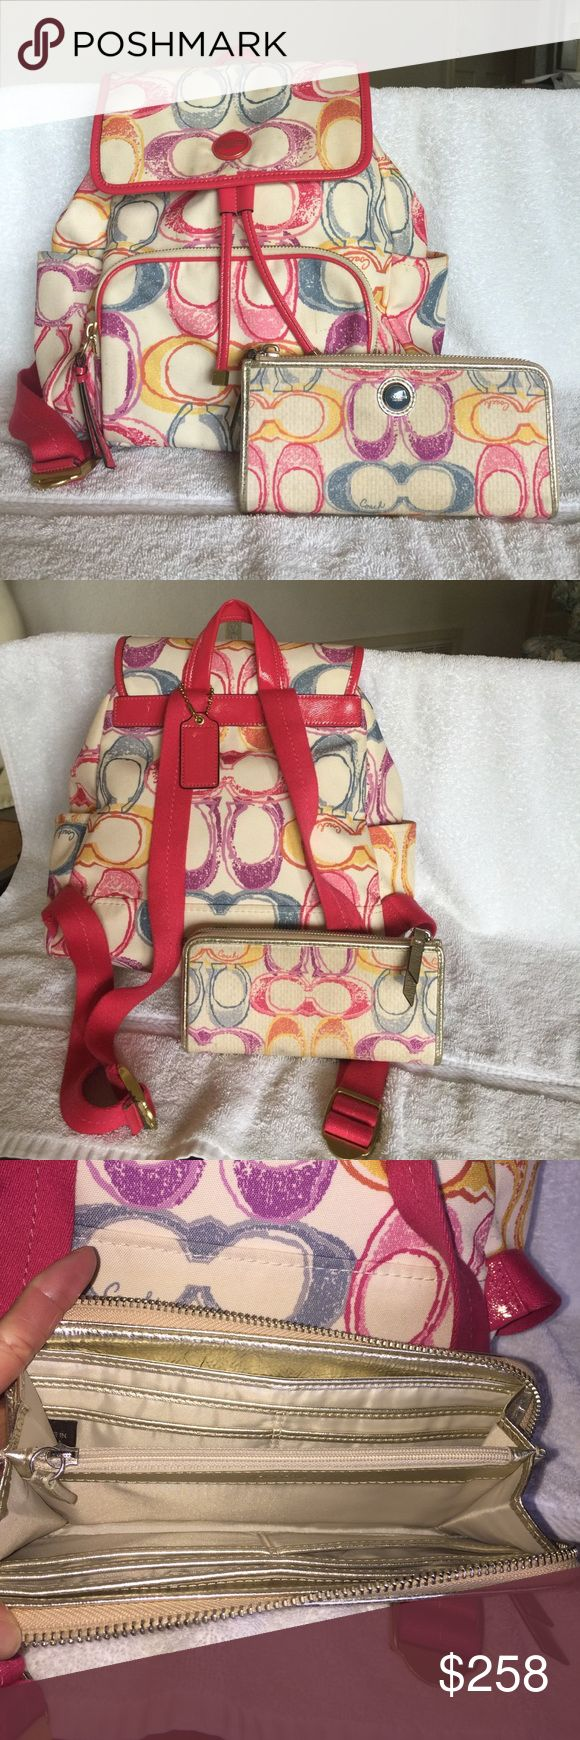 """Coach poppy signature backpack with wallet Coach poppy backpack,Pink/multicolor with gold hardware,used but in great condition,from smoke & pet free home,100% authentic,measuremet: 12.5""""(w)x11.5""""(H), it comes with matching wallet Coach Bags Backpacks"""